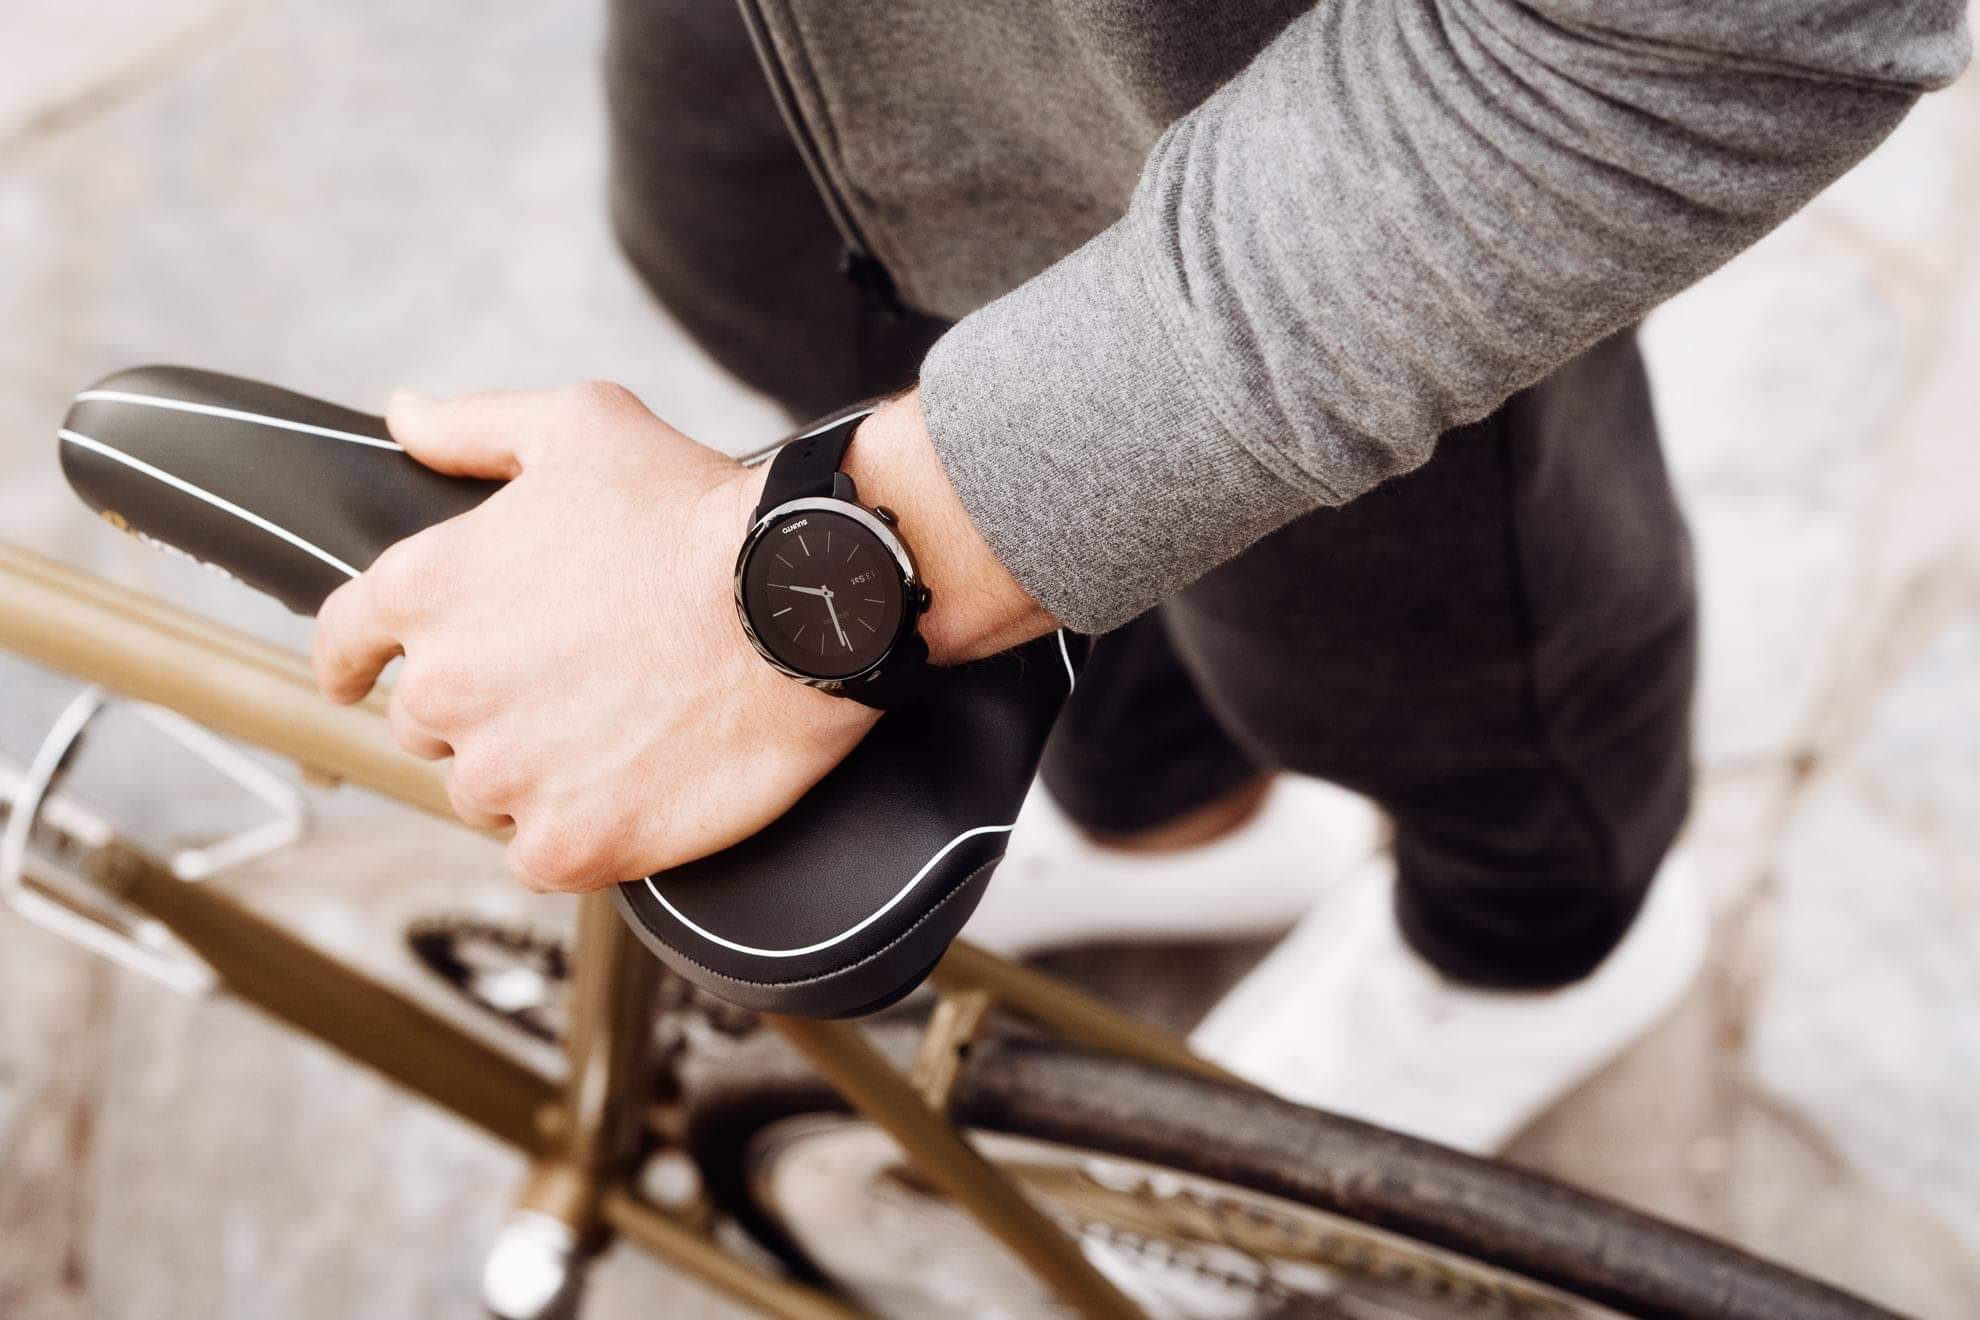 Man in a grey hoodie holding the black leather seat of a bicycle, wearing a black smartwatch that shows a clock face